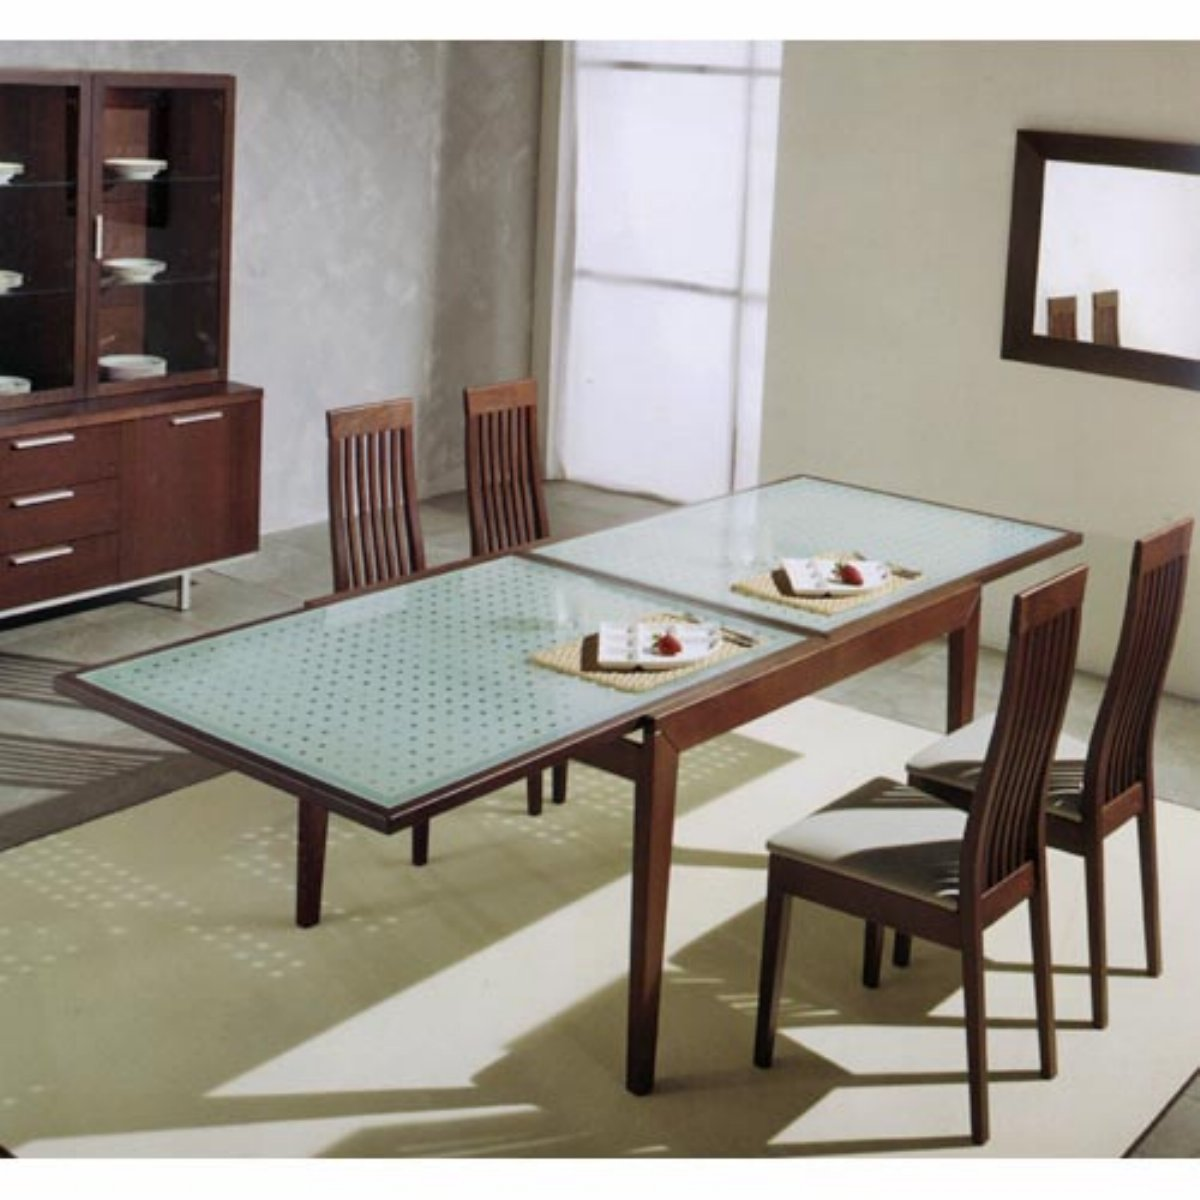 Extendable glass top dining table decor ideasdecor ideas for Dining room glass table